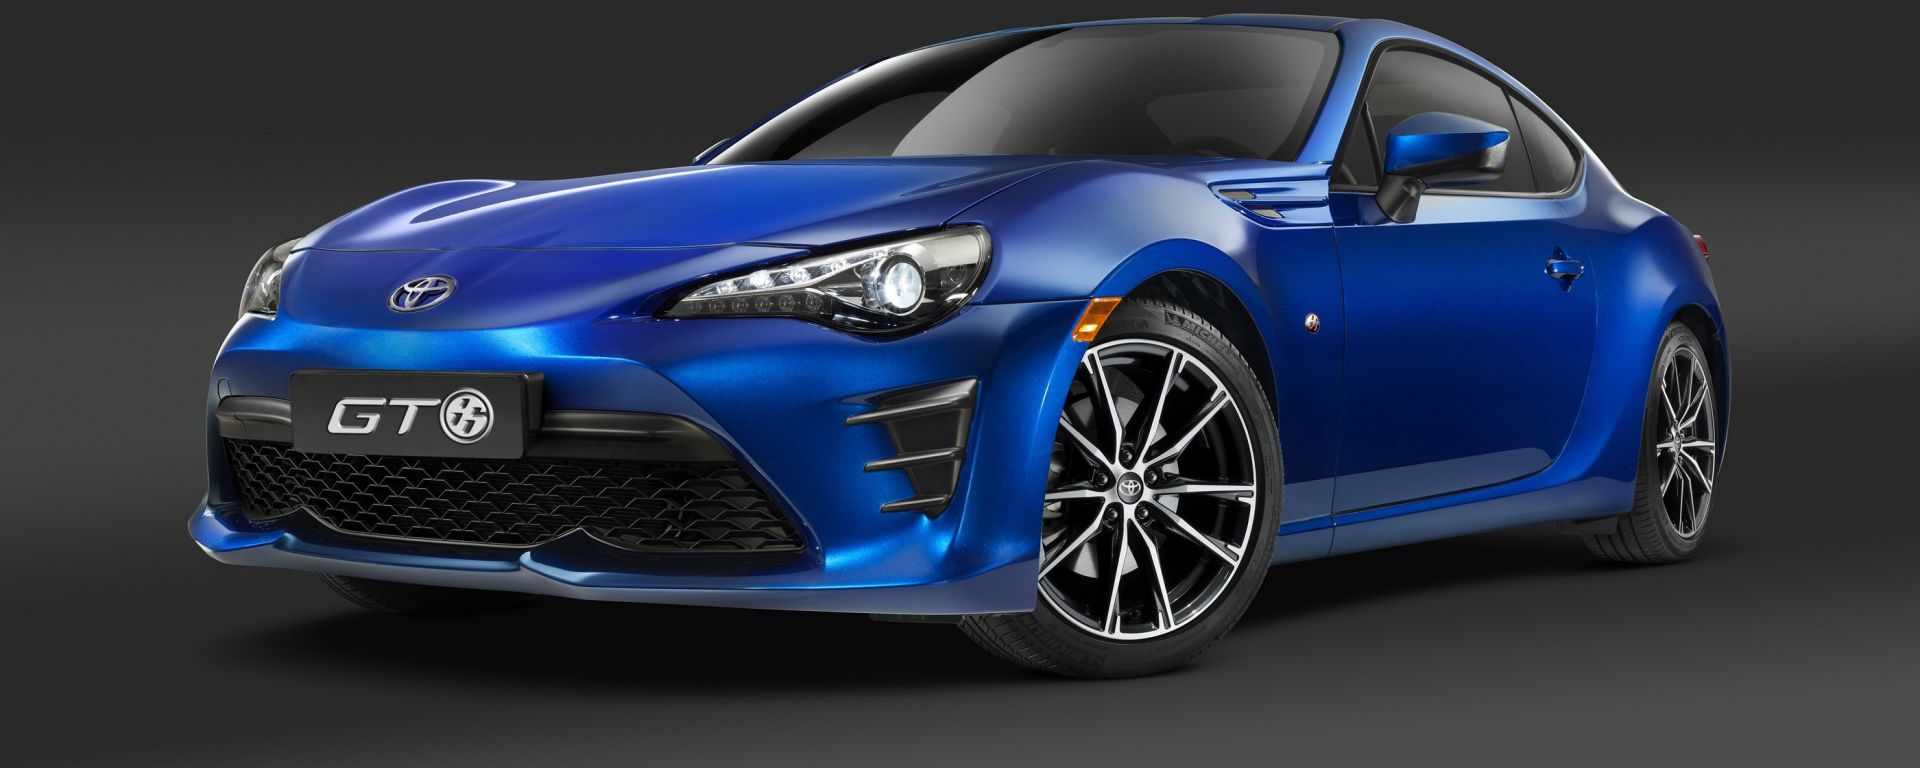 Toyota GT86: il restyling arriva in Italia